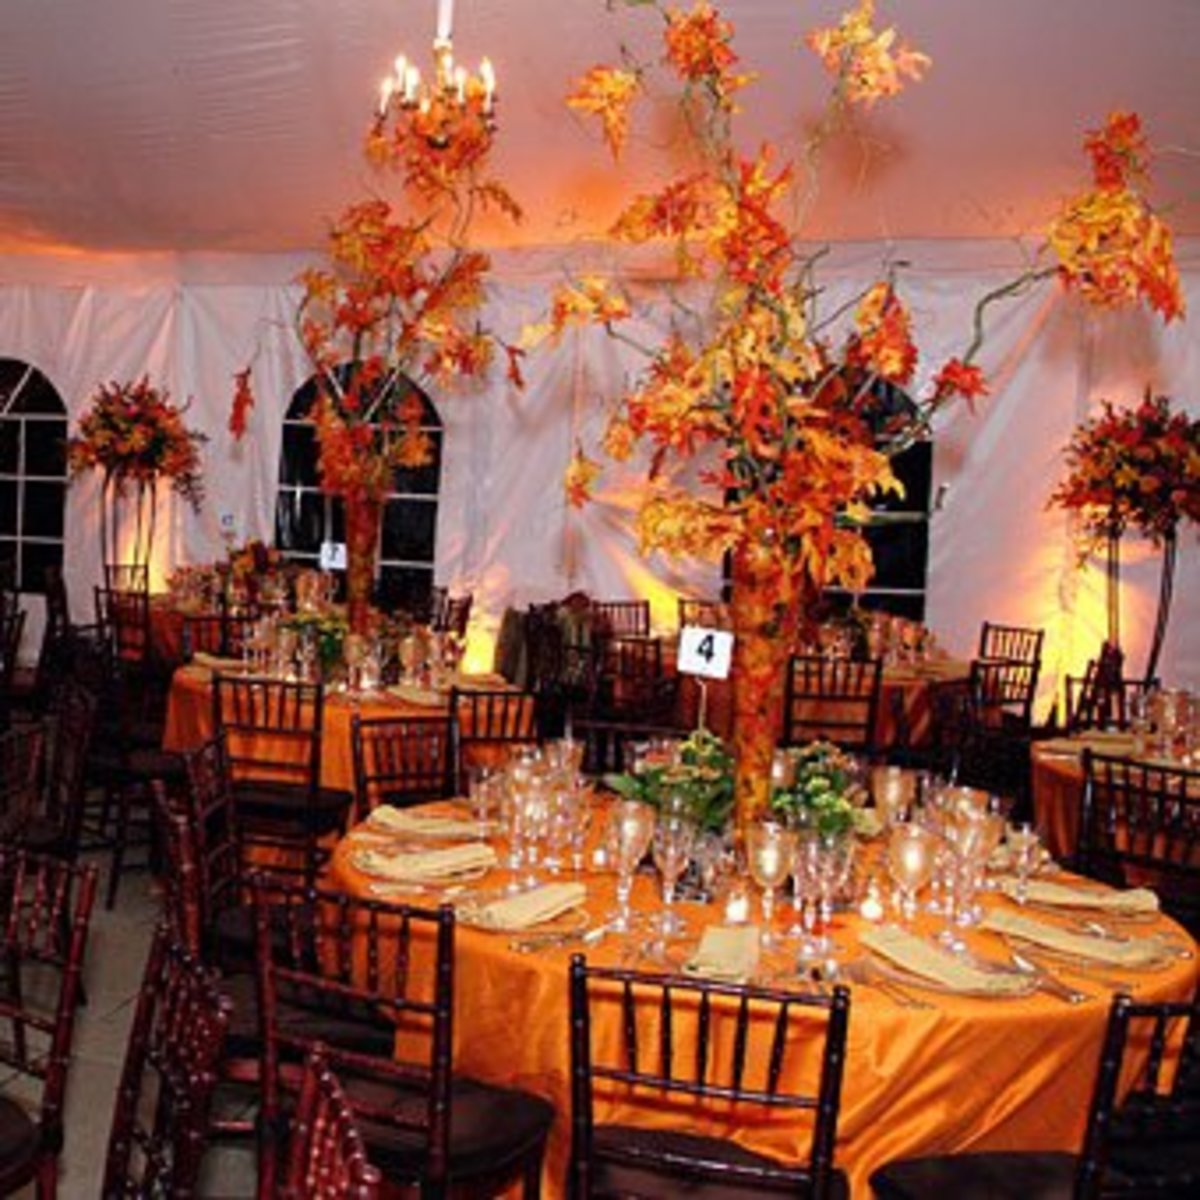 Fall Wedding Ideas: Decorations, Favors, and Dresses